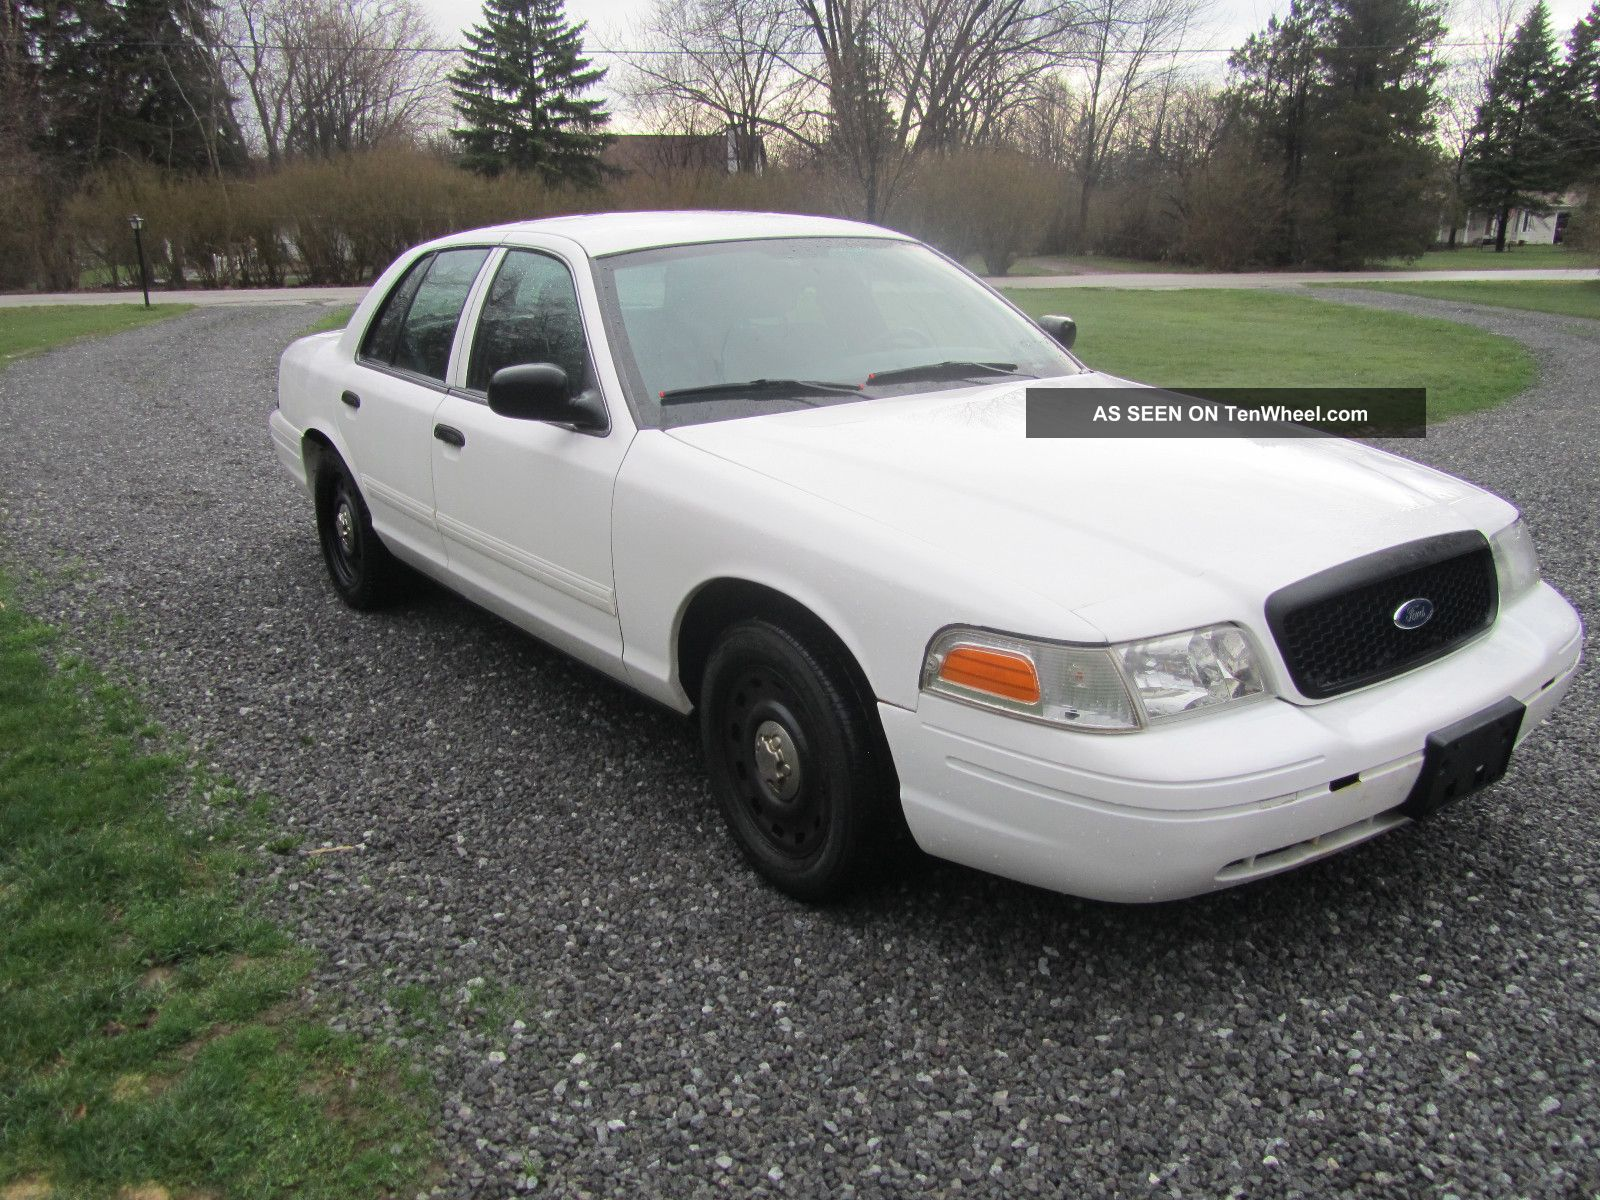 2009 ford crown victoria police interceptor maint records. Black Bedroom Furniture Sets. Home Design Ideas